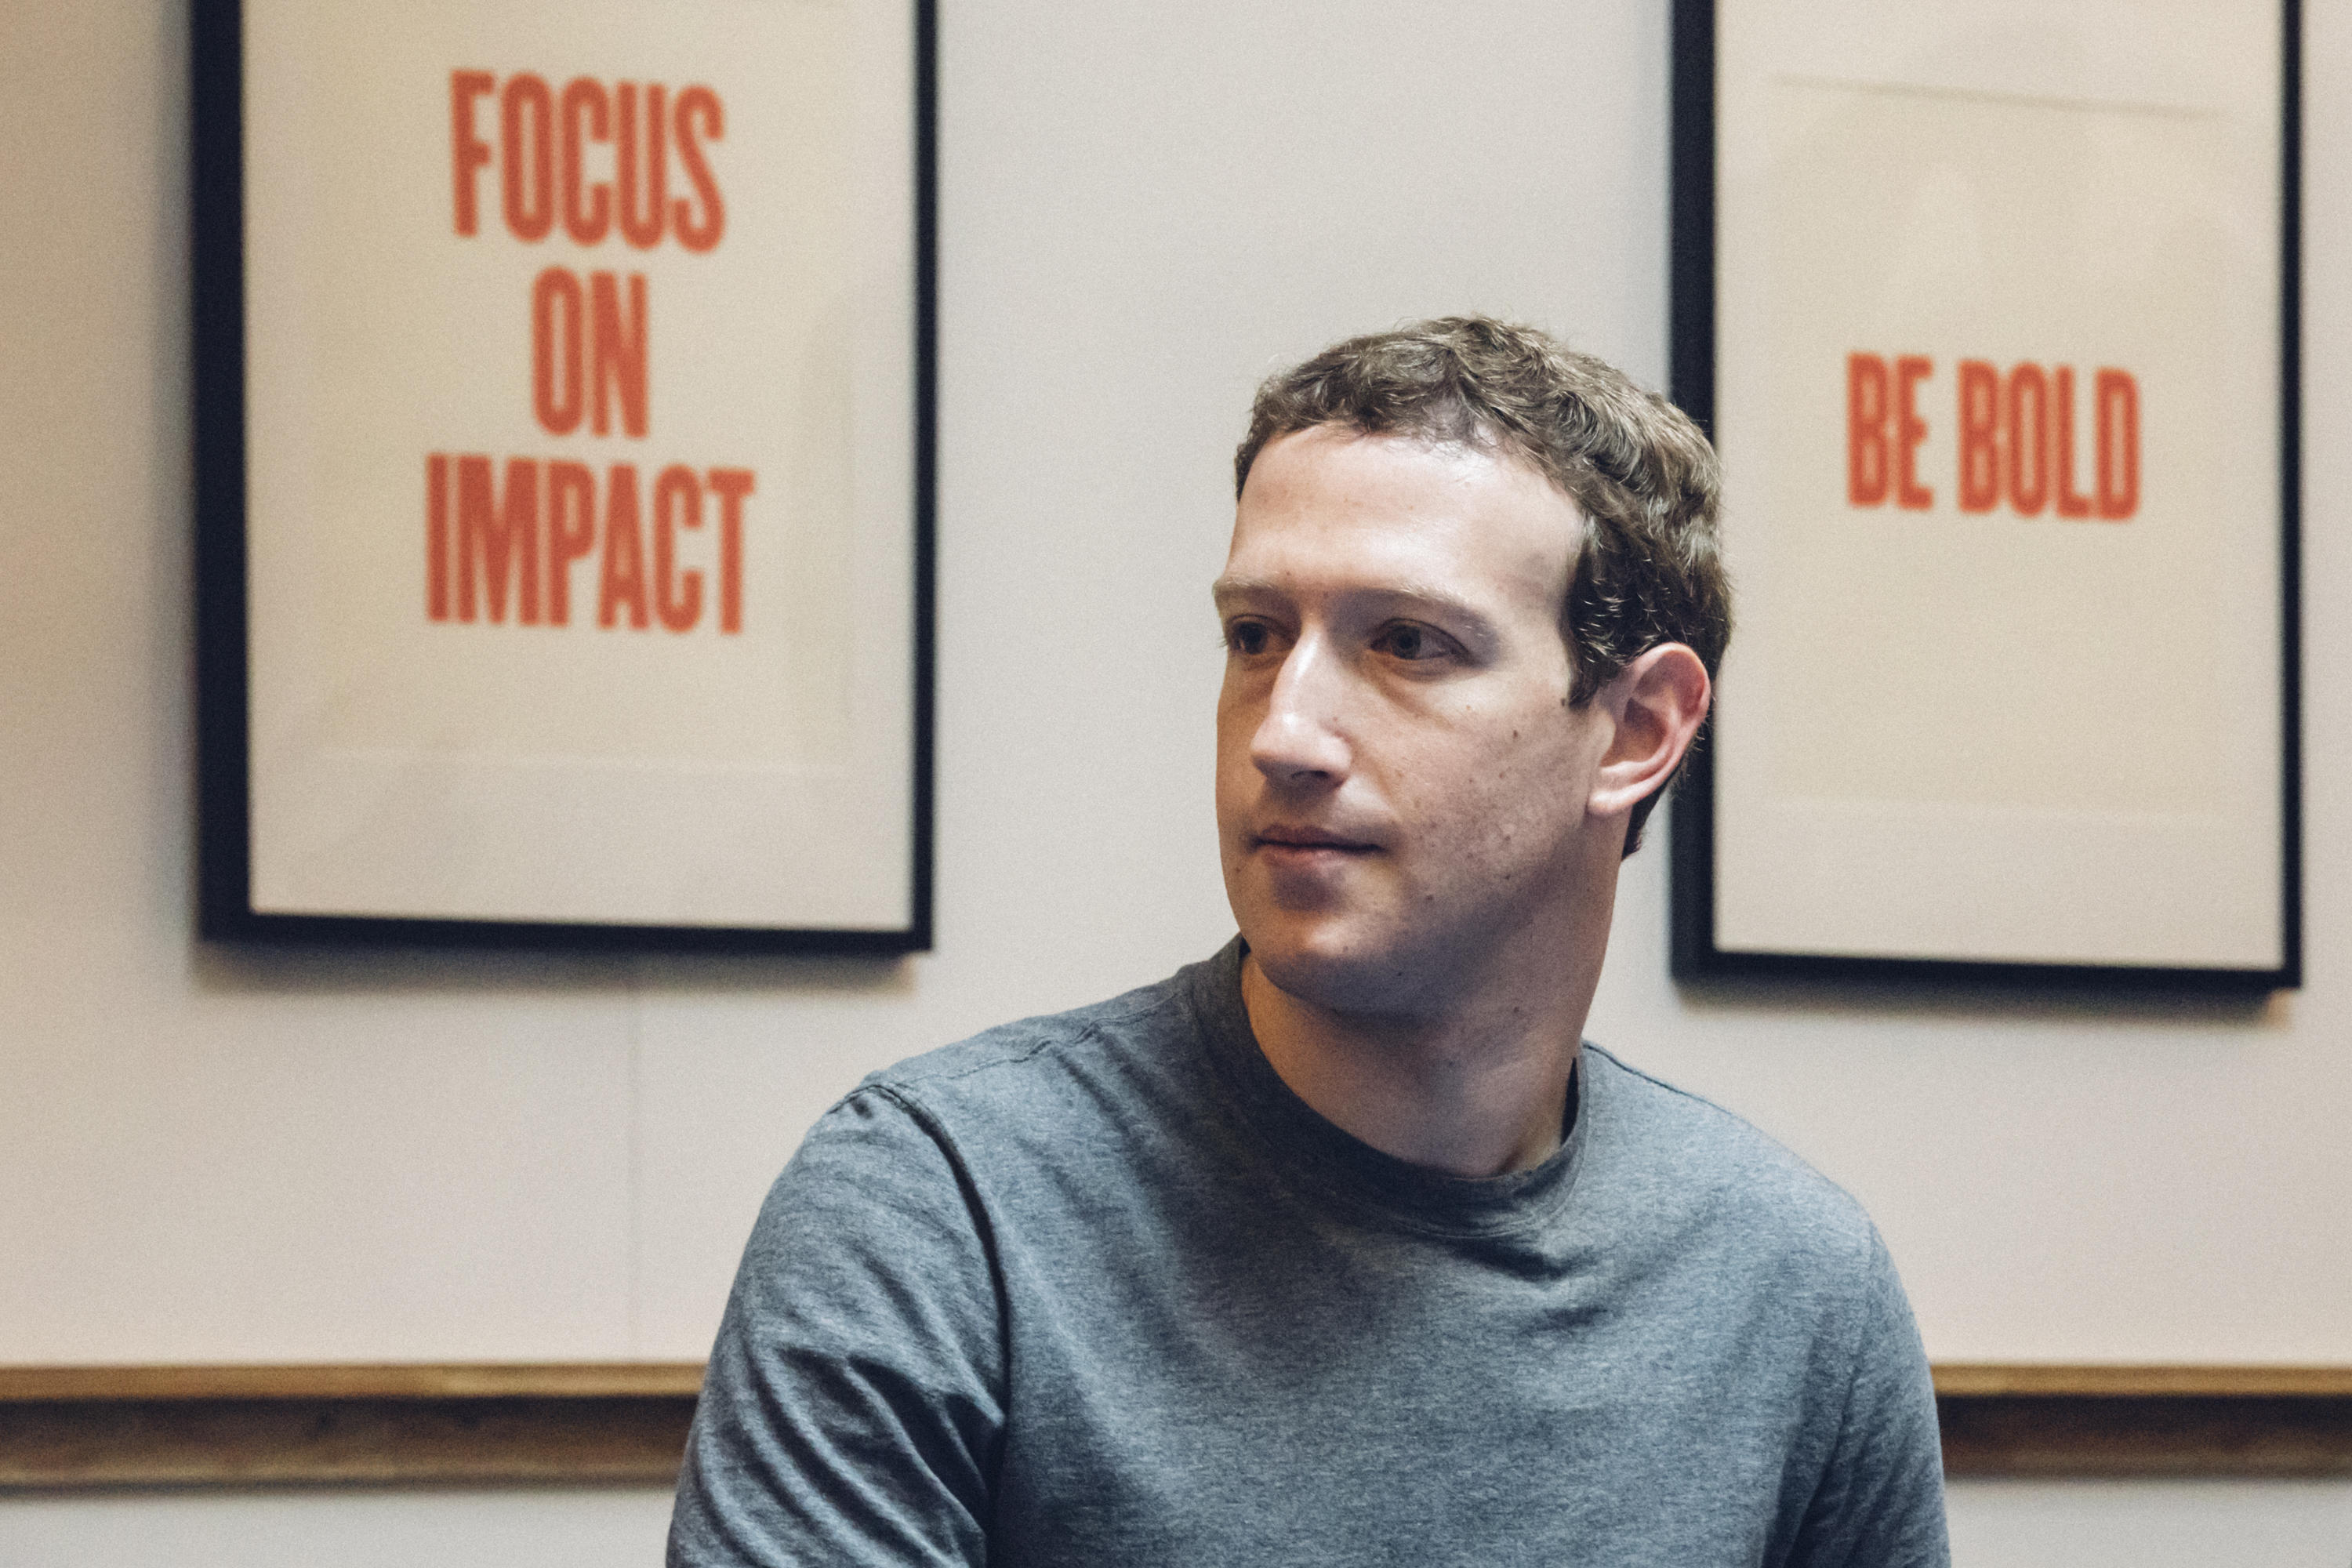 """Facebook CEO Mark Zuckerberg in front of signs that say """"focus on impact"""" and """"be bold."""""""